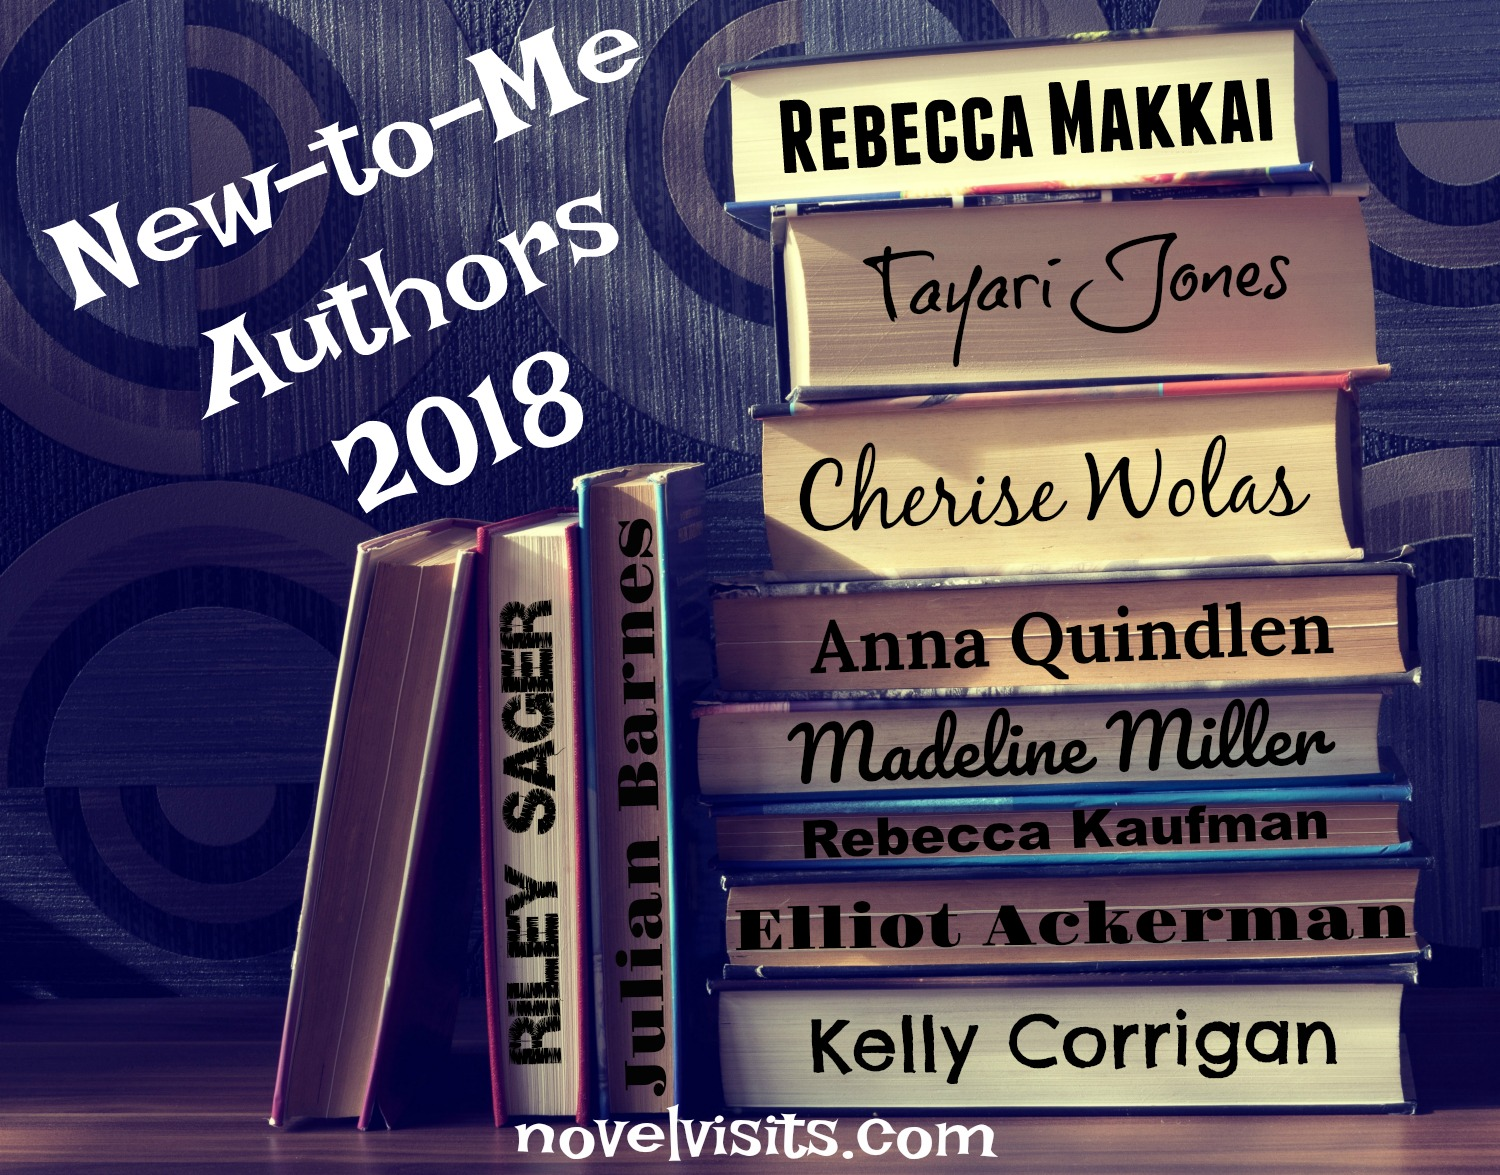 Novel Visits' New-to-Me Authors for 2018